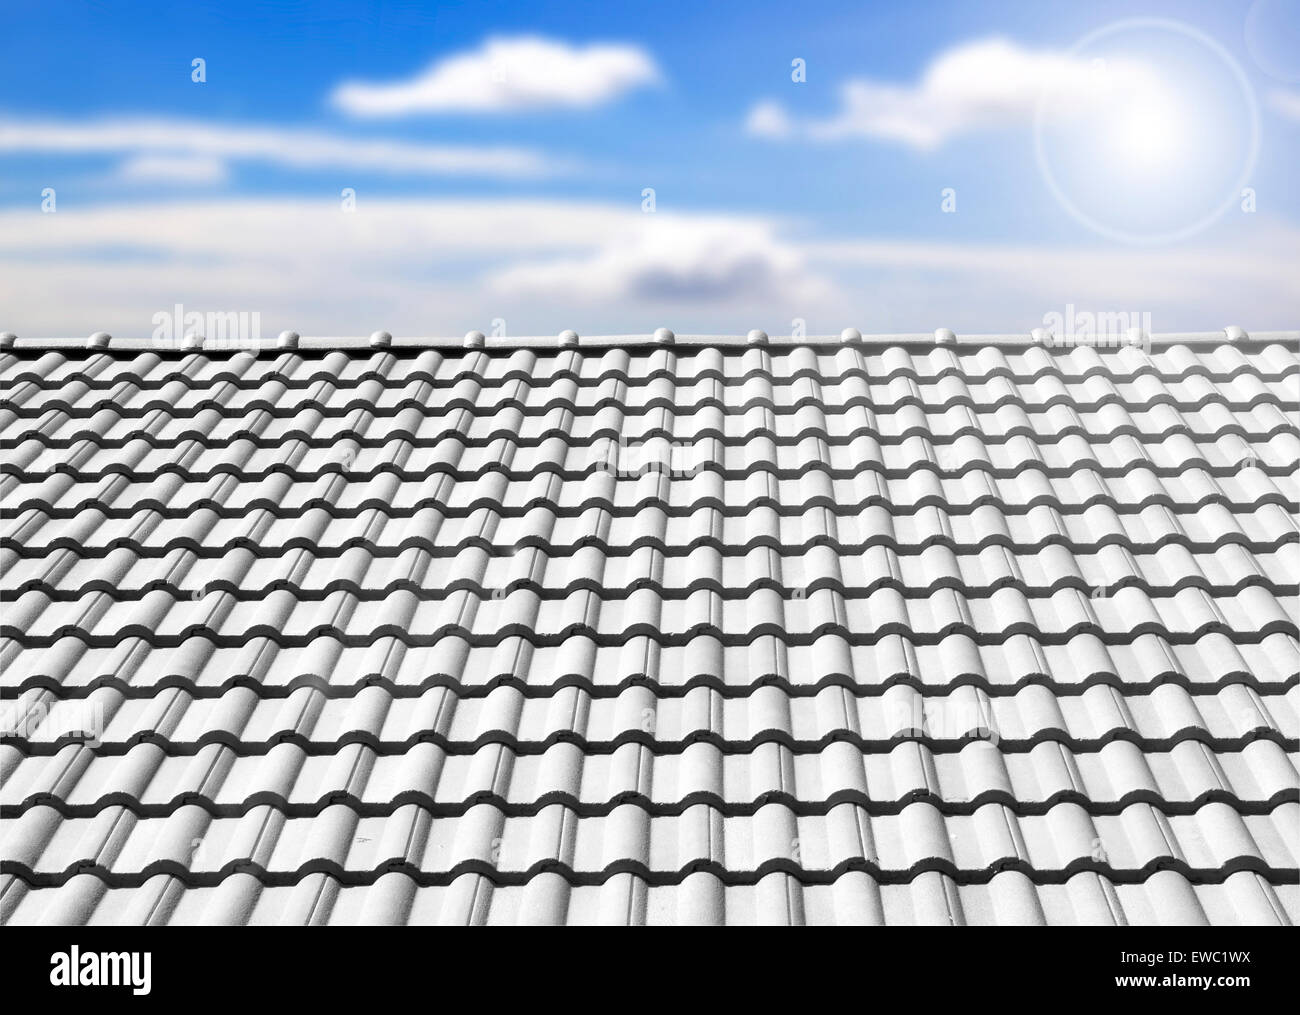 Brown tile roof in garden against blue sky. background - Stock Image